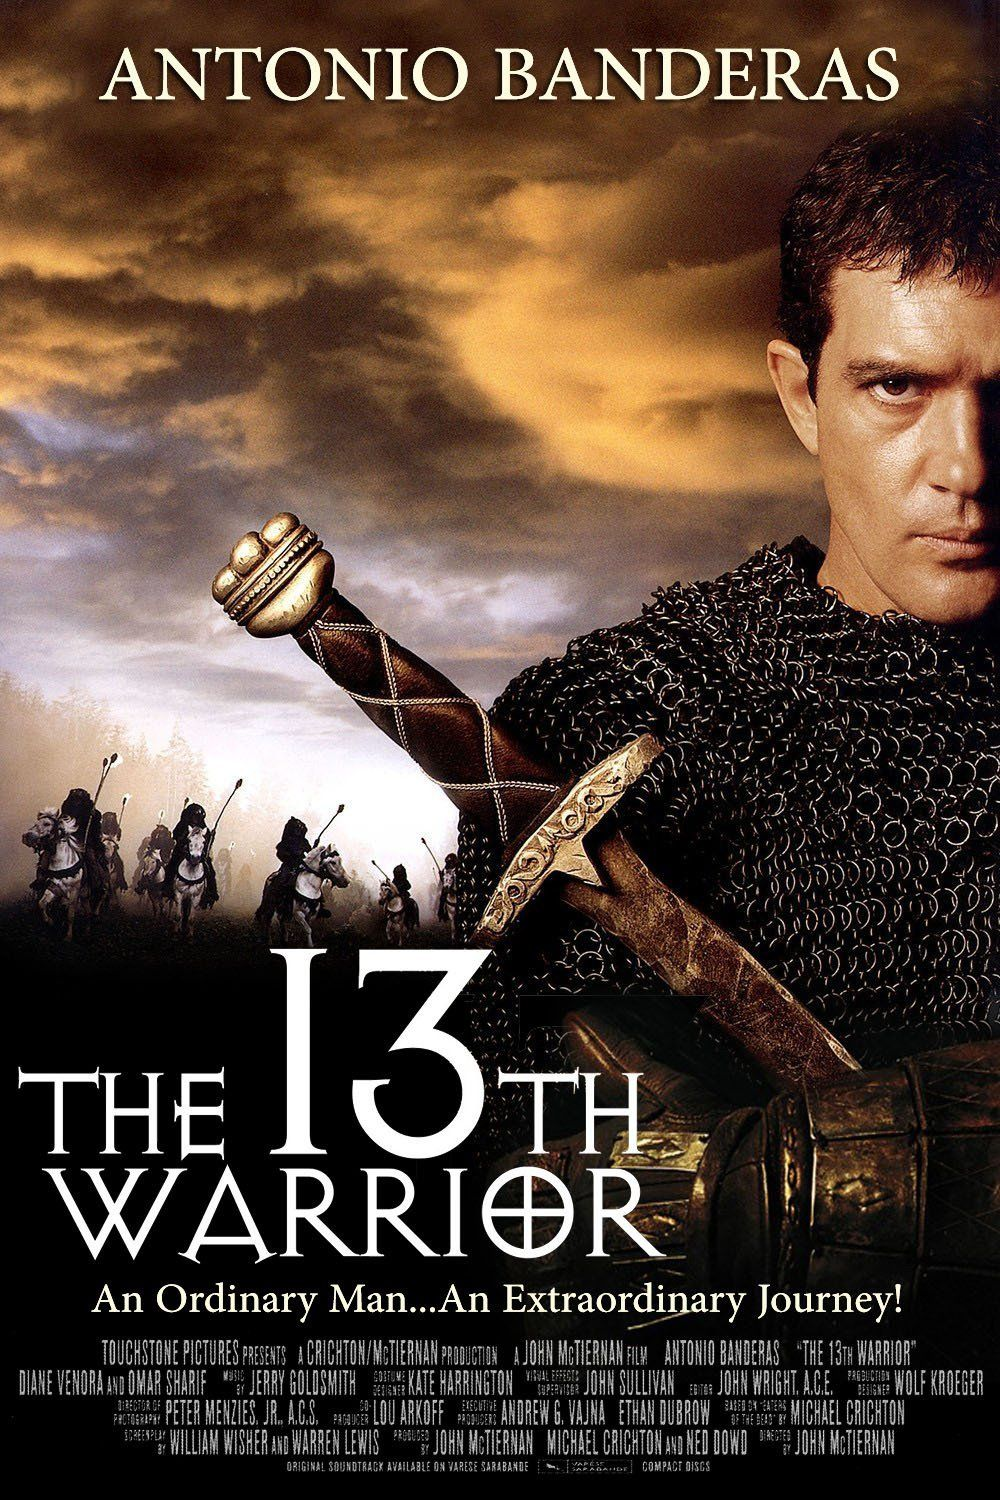 The 13th Warrior One Of My Favorite Movies Of All Time Antonio